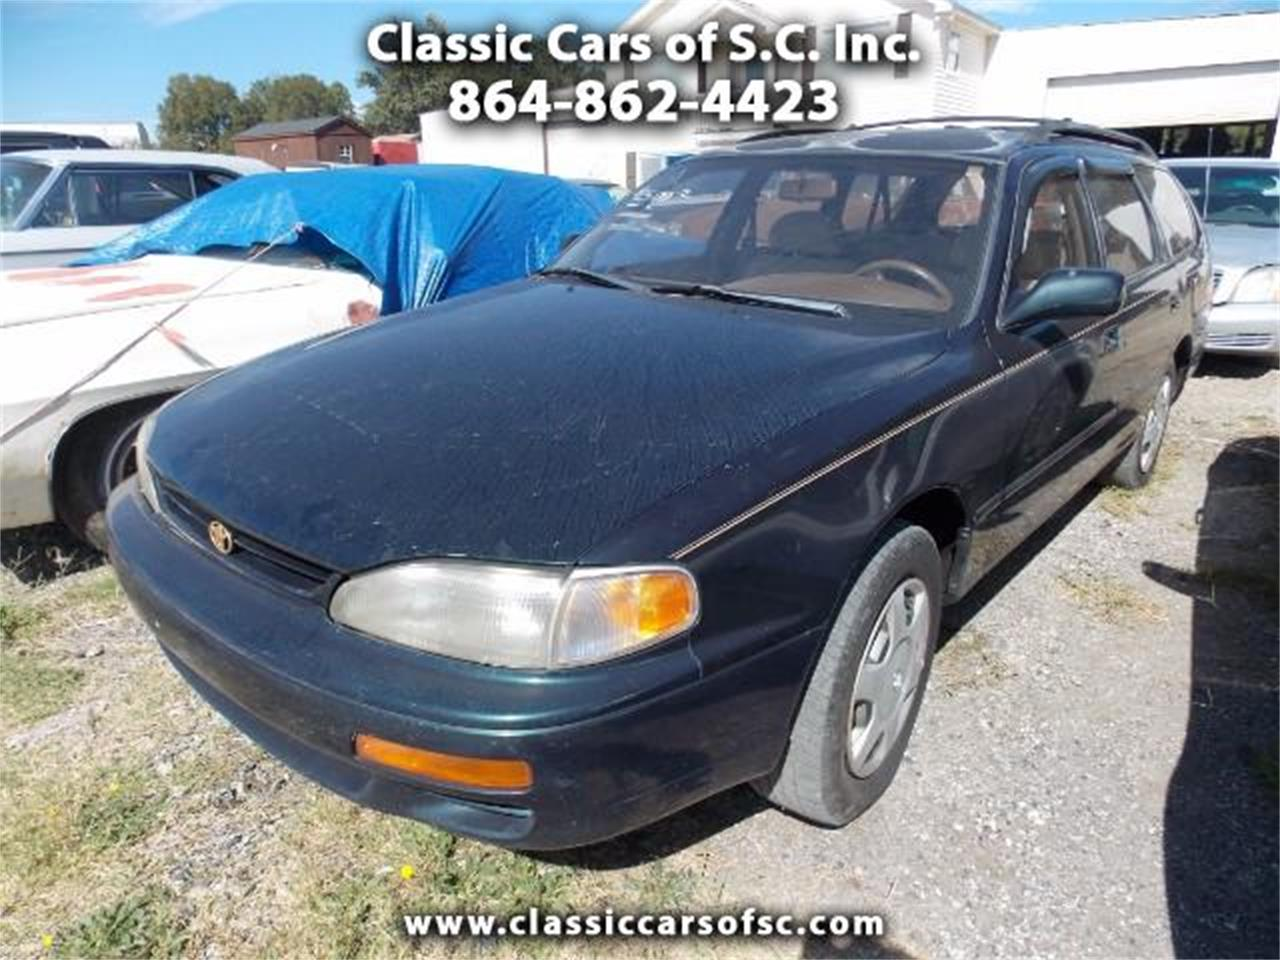 1995 Toyota Camry for sale in Gray Court, SC